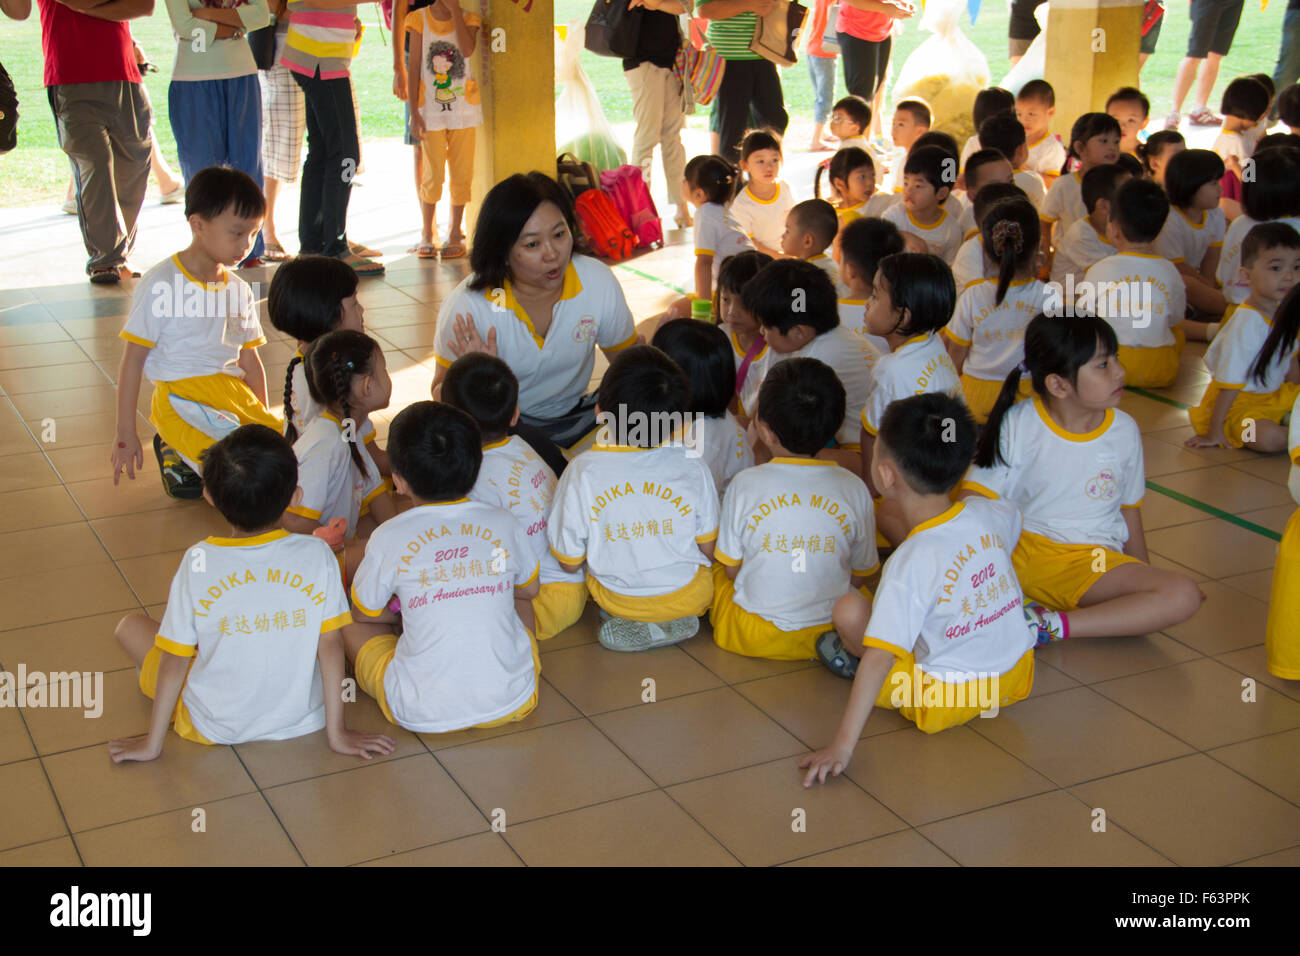 Teacher briefing the childrens on their sport day activity. - Stock Image